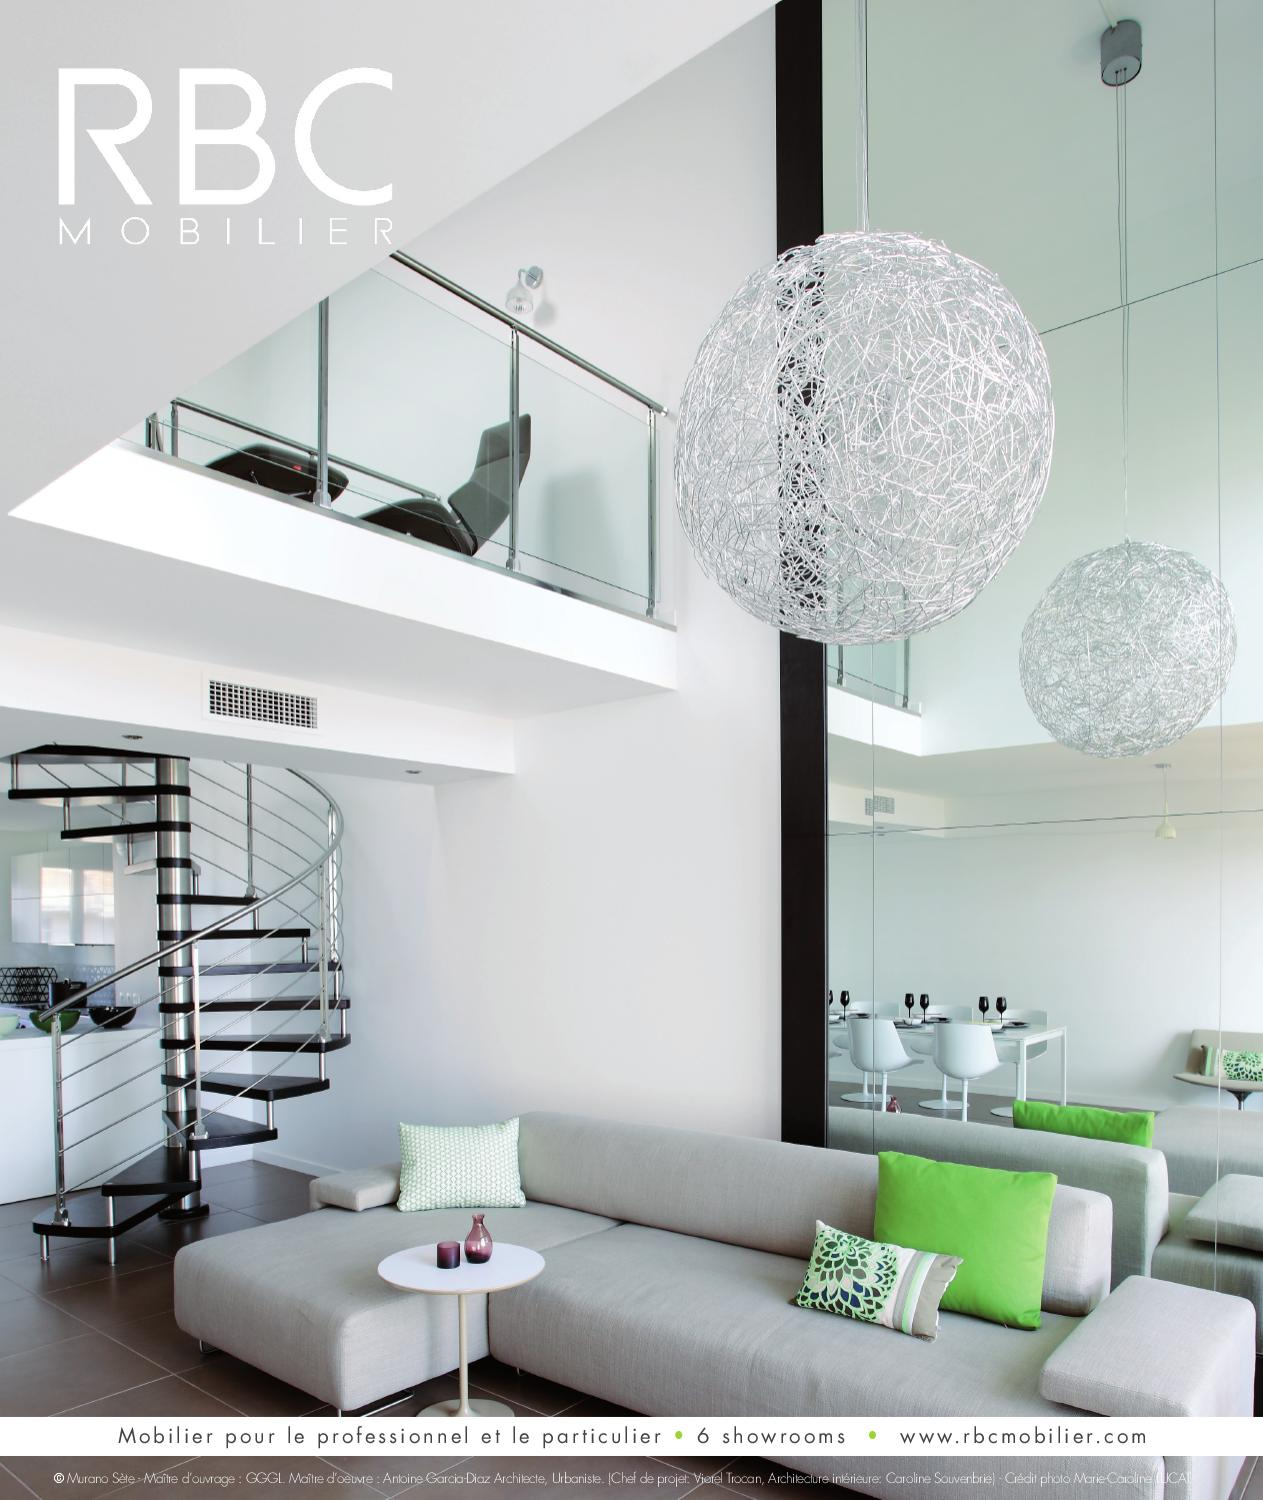 book rbc 2011 by rbc mobilier issuu. Black Bedroom Furniture Sets. Home Design Ideas